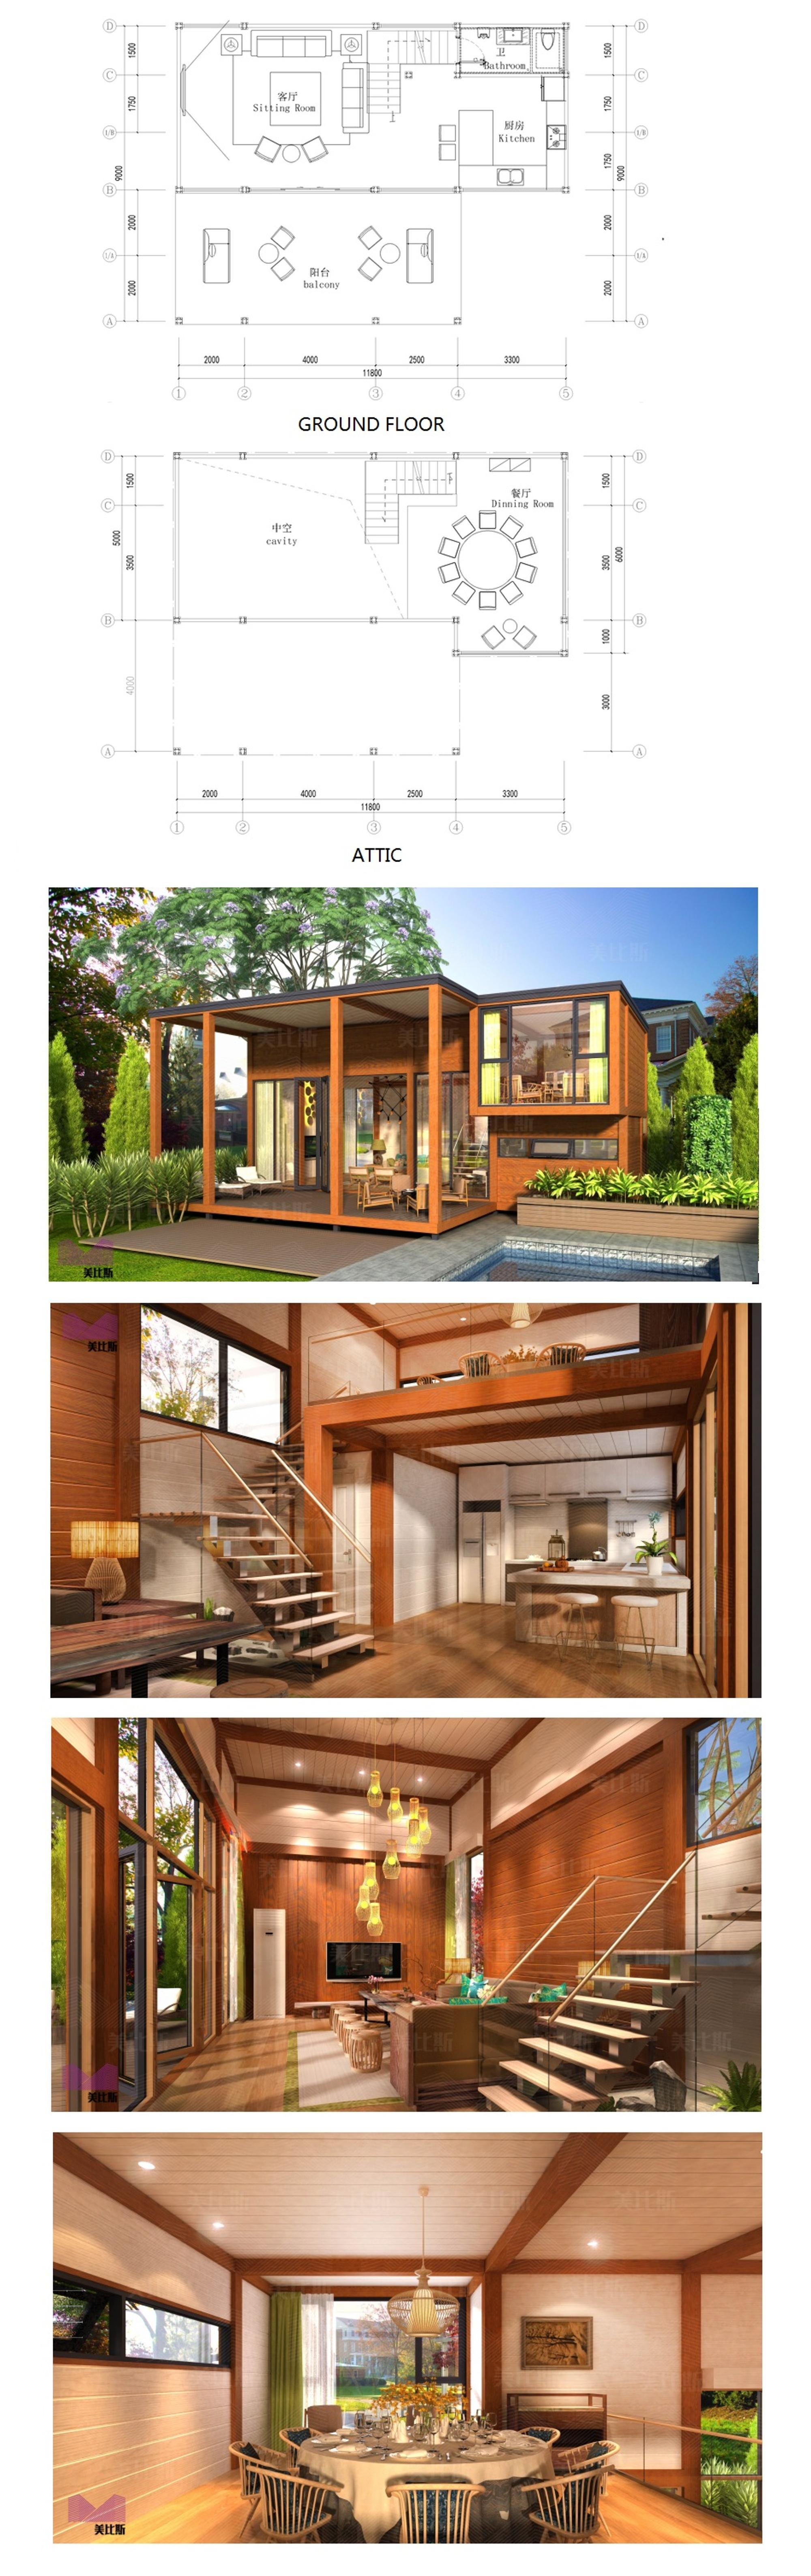 two stories prefabricated luxury wooden prefab house villa for sale